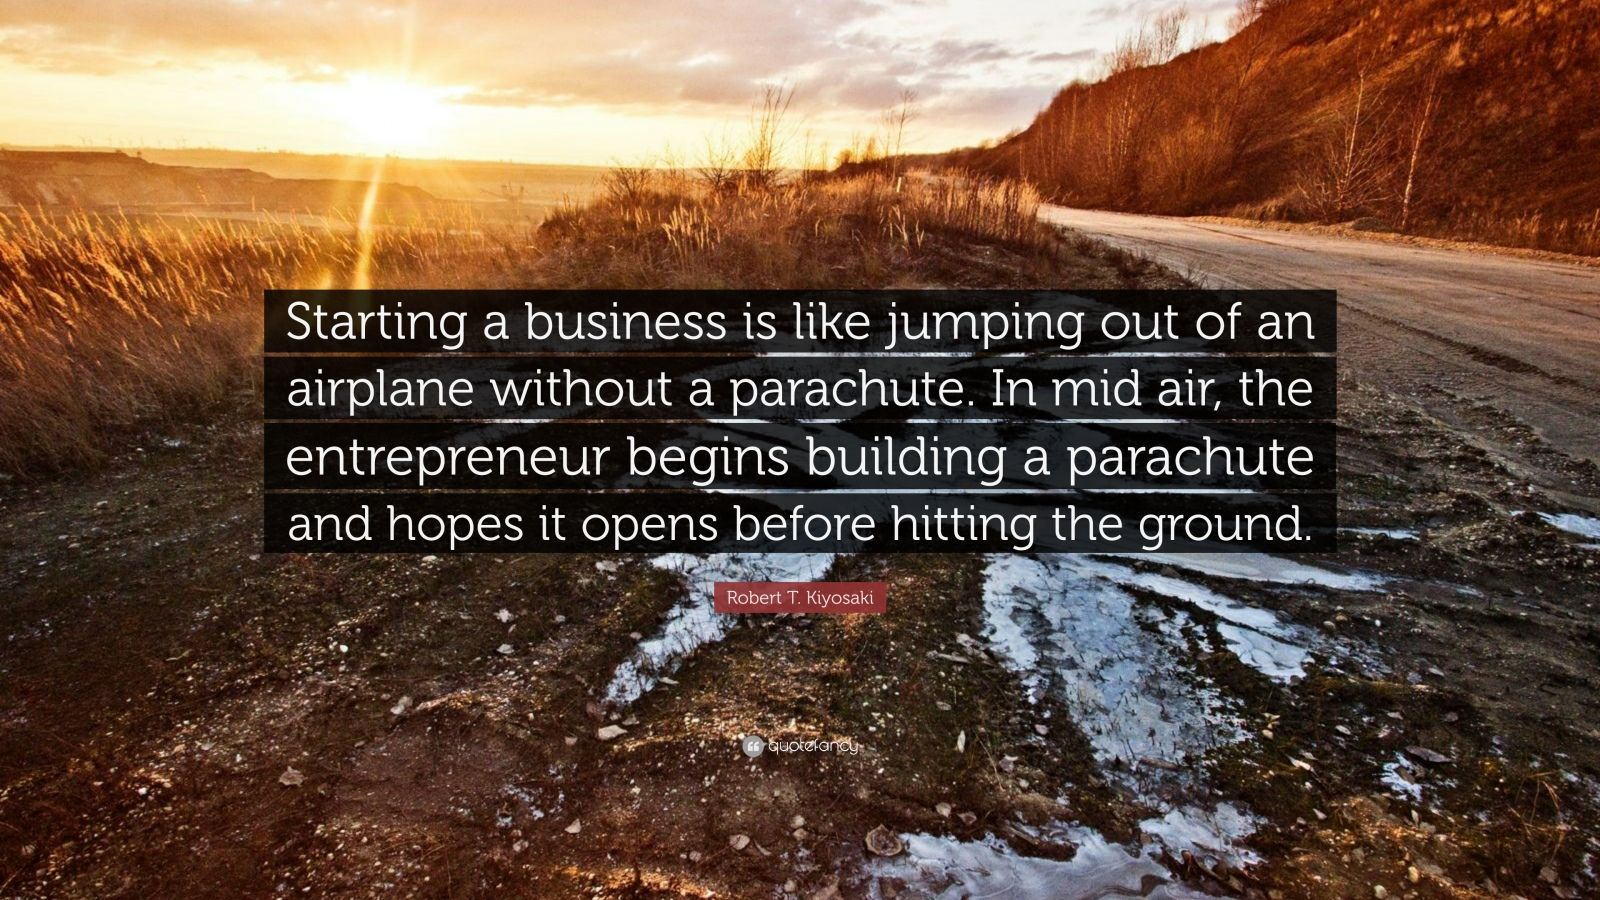 "Robert T. Kiyosaki Quote: ""Starting a business is like jumping out of an airplane without a parachute. In mid air, the entrepreneur begins building a parachute and hopes it opens before hitting the ground."""